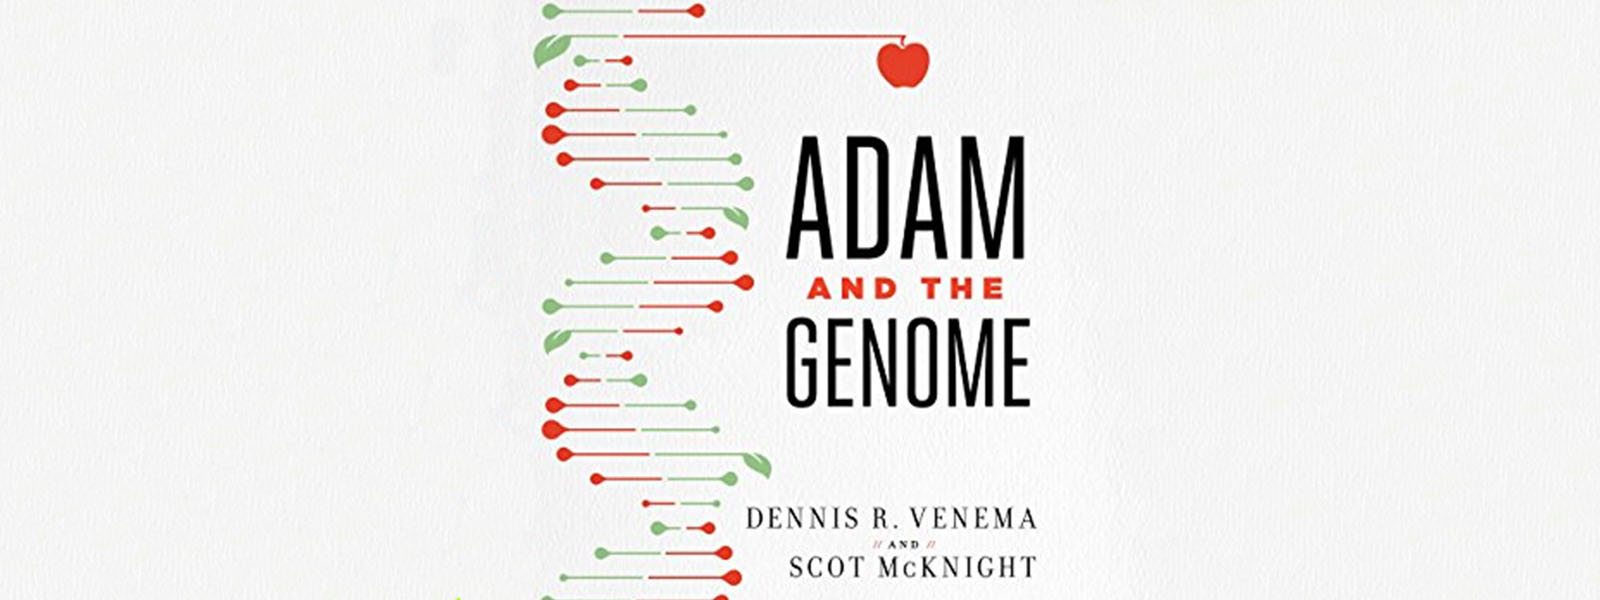 A Critical Reflection on Adam and the Genome, Part 1